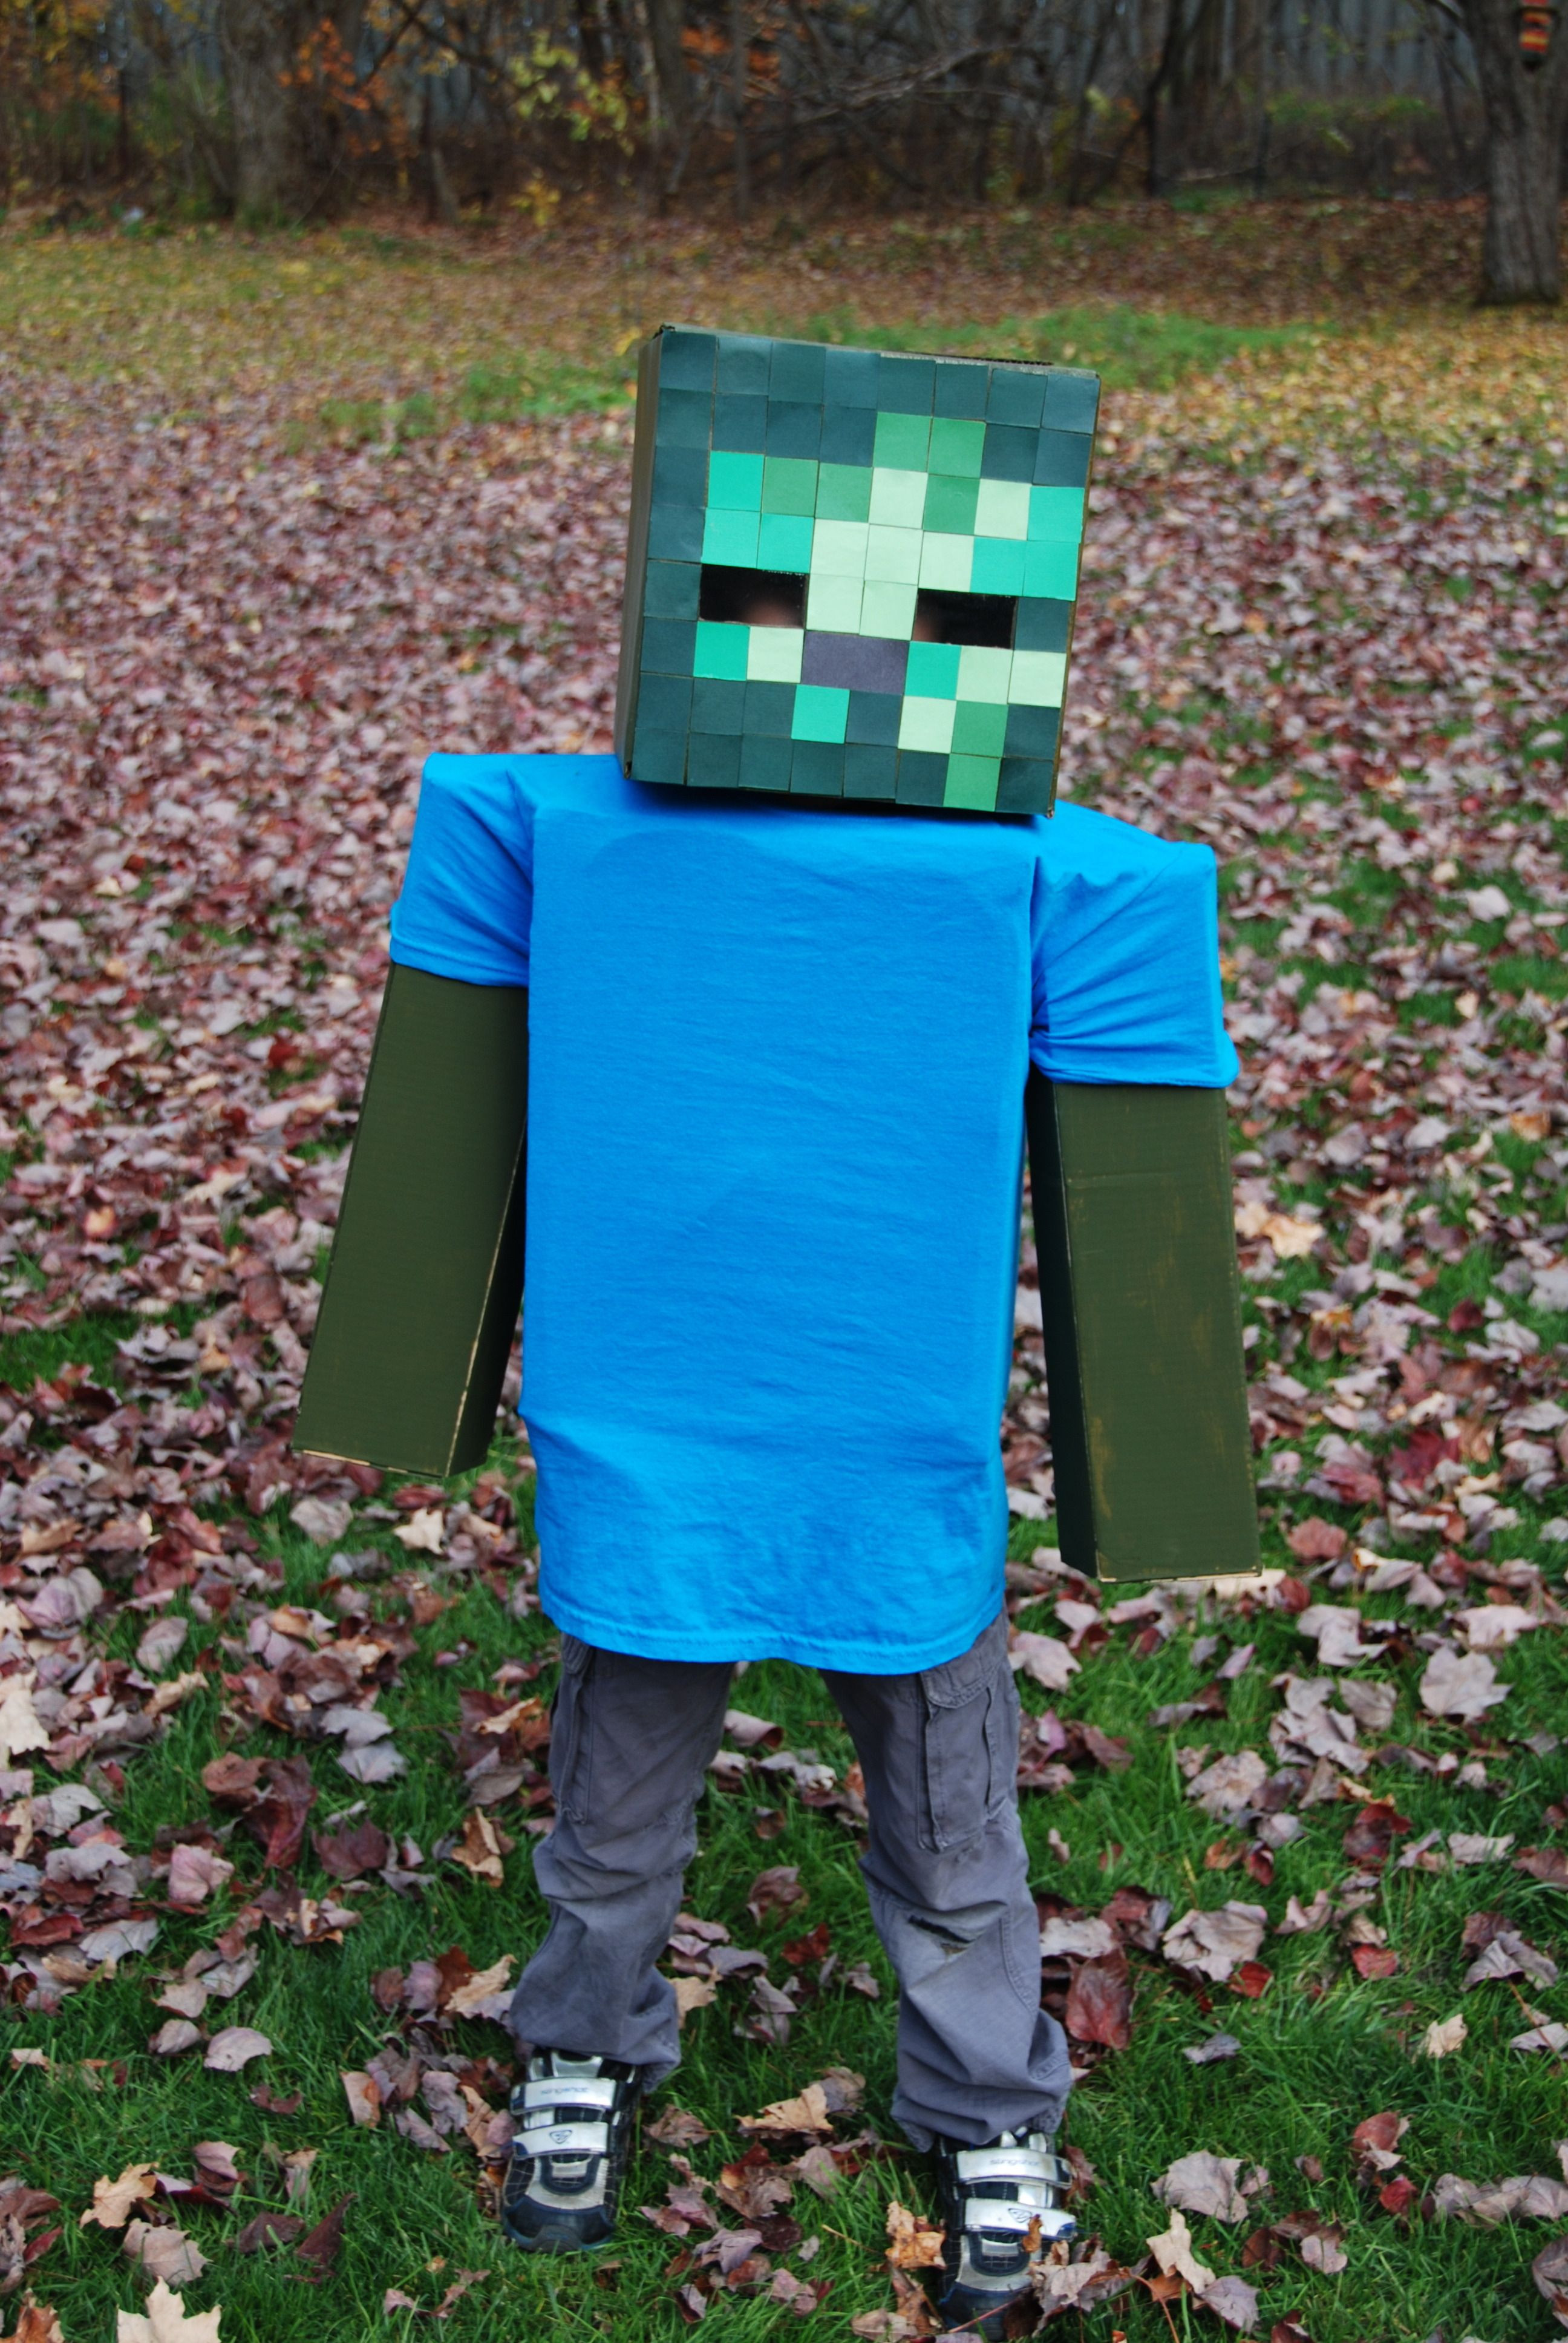 Best ideas about DIY Minecraft Costume . Save or Pin Minecraft Zombie Costume Diy Lwhtxrs Now.